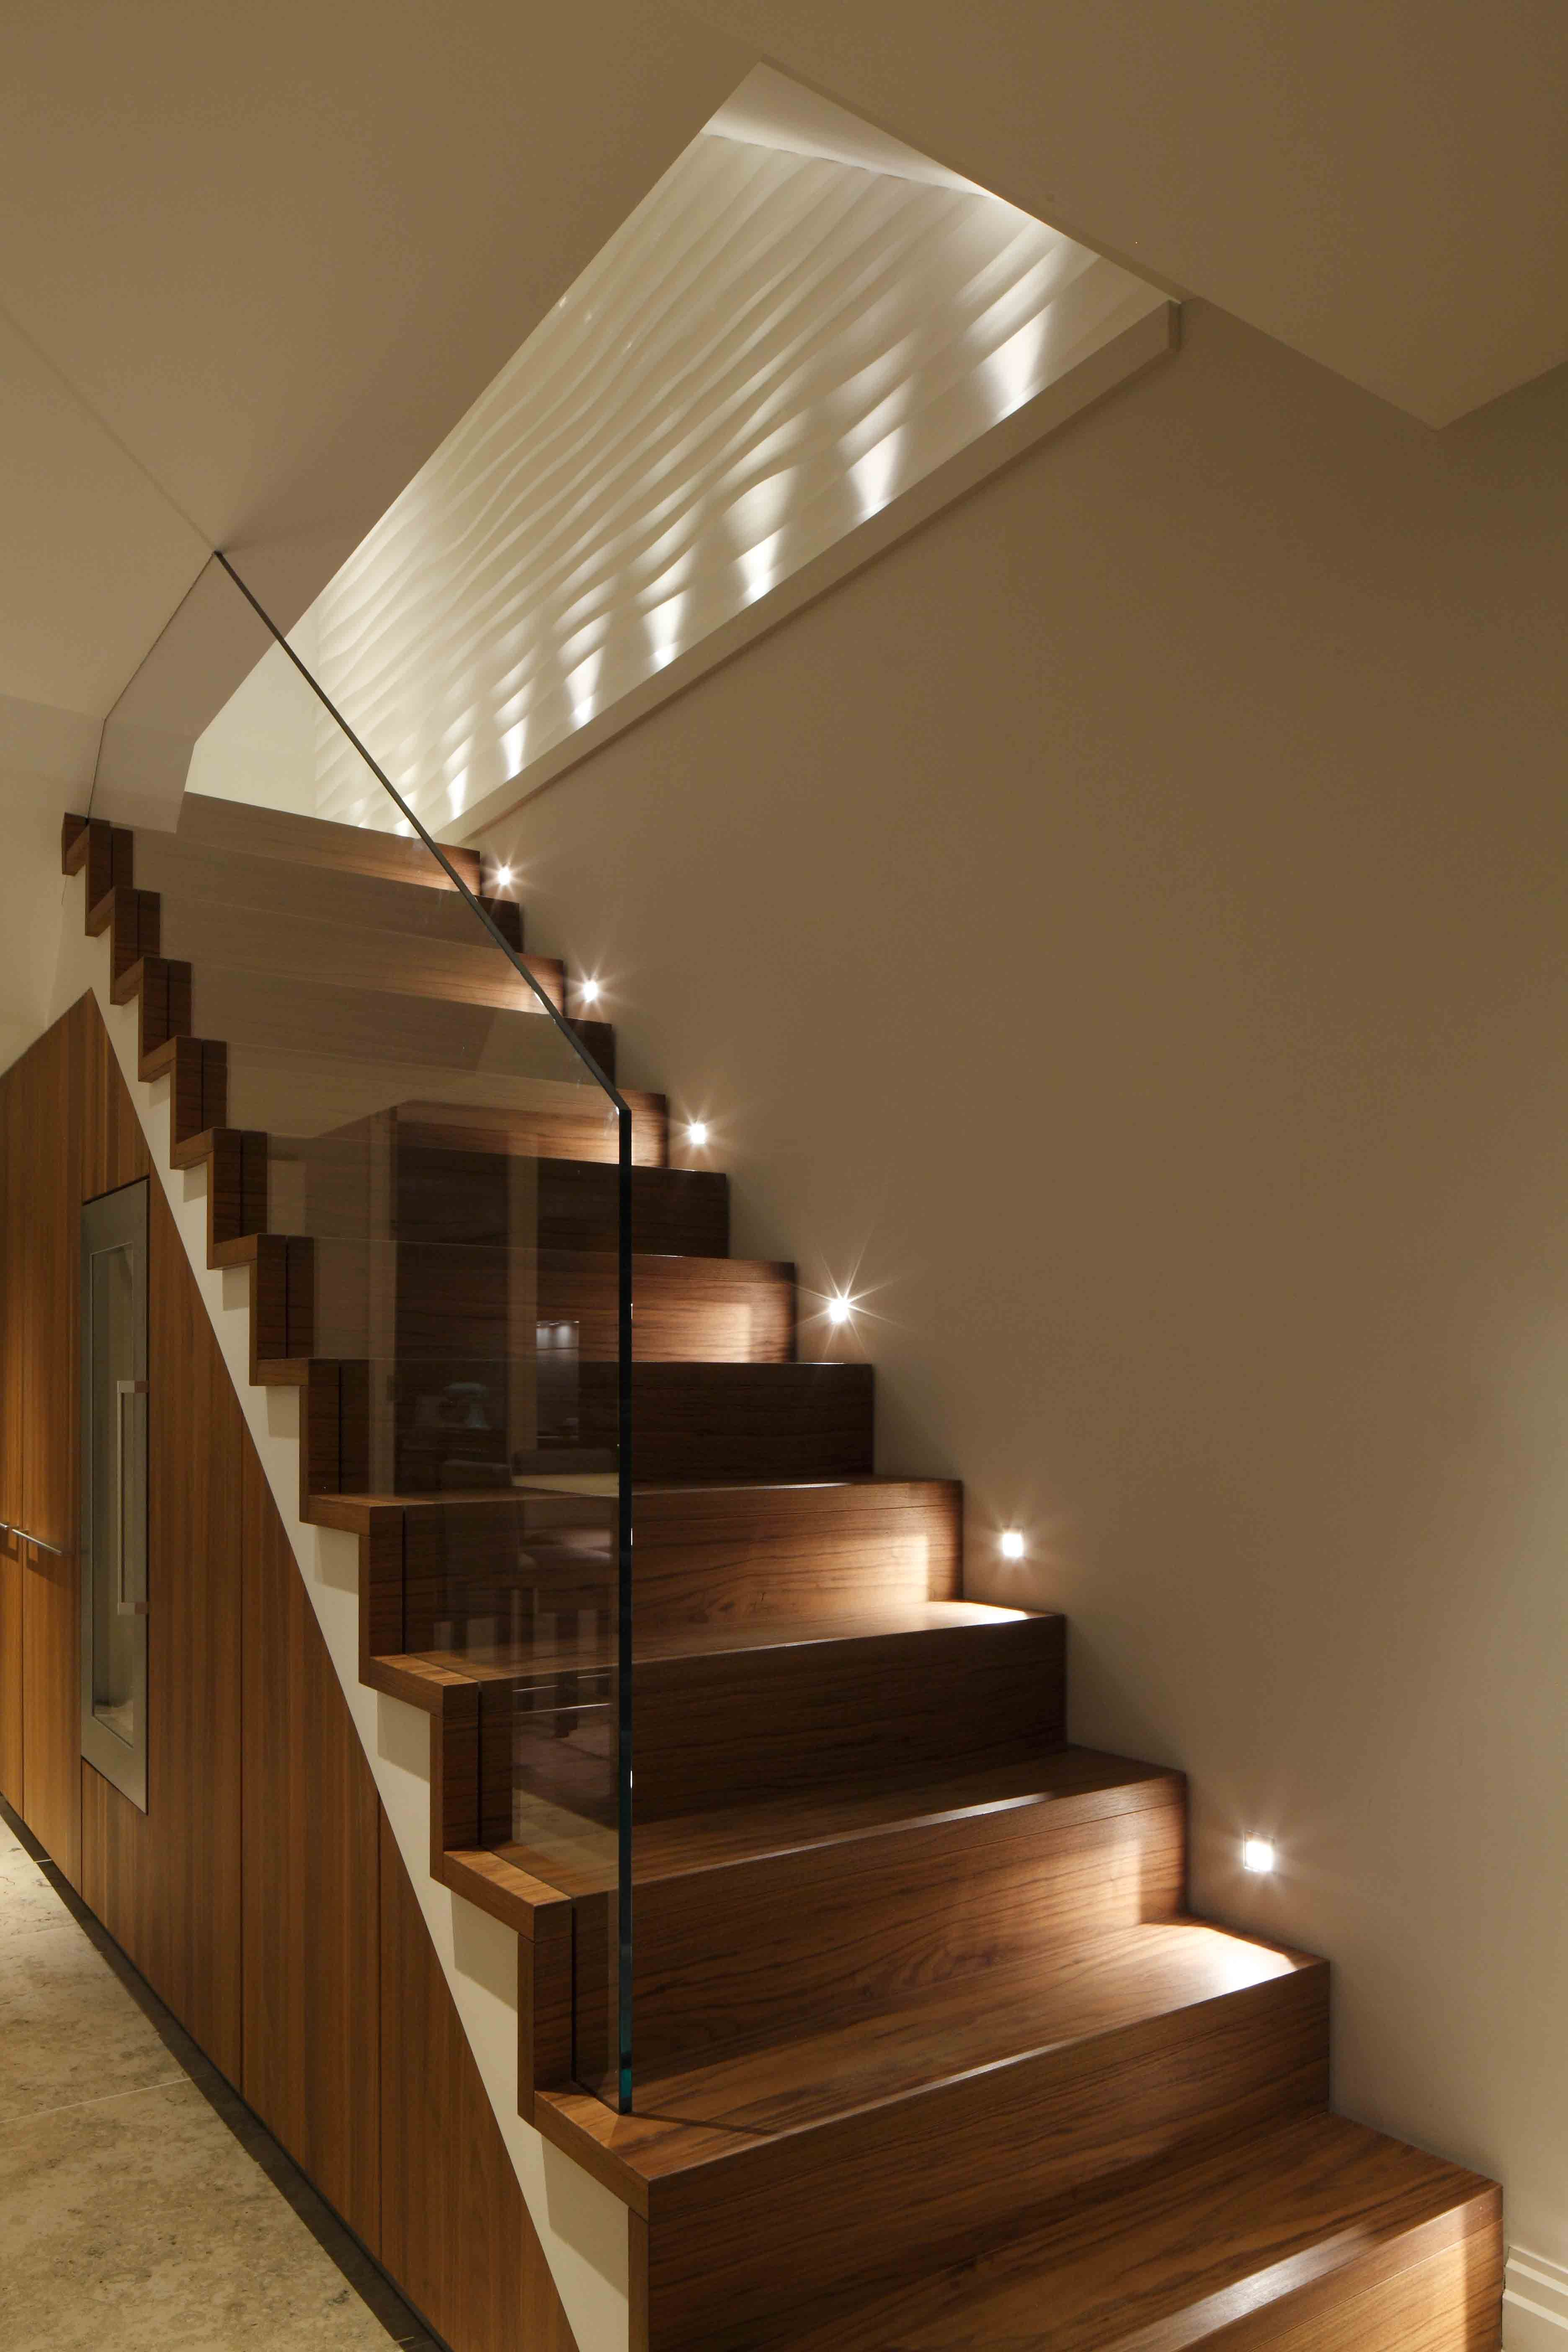 Treppenbeleuchtung Einbauen 15 Stairway Lighting Ideas For Modern And Contemporary Interiors